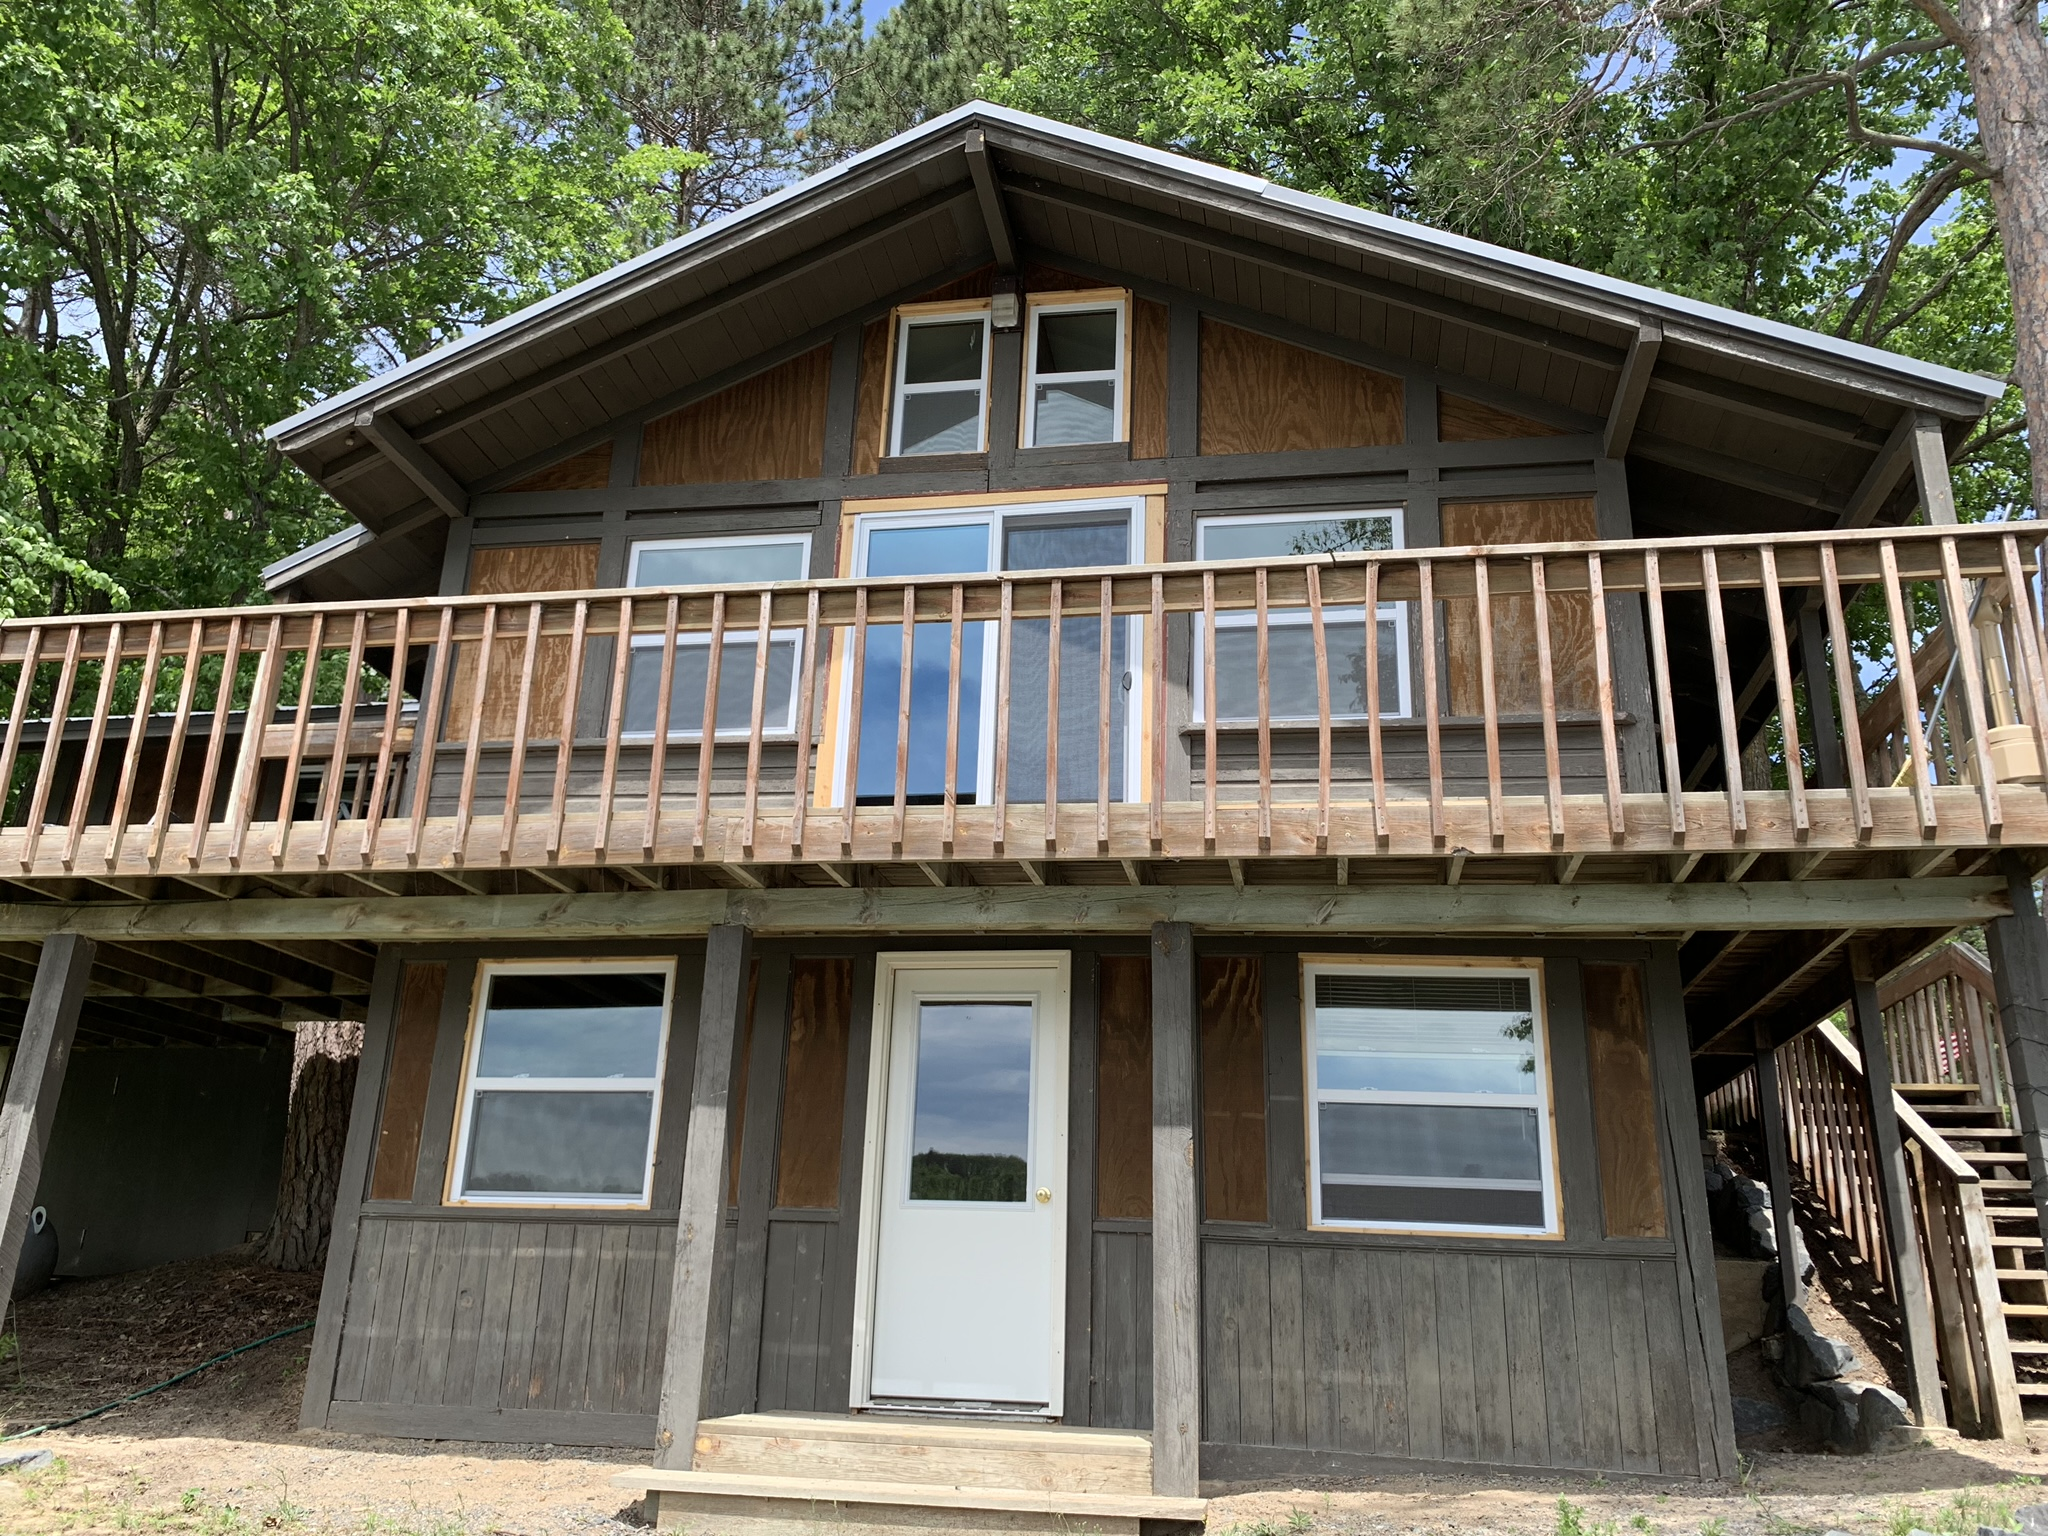 The Cabin front view